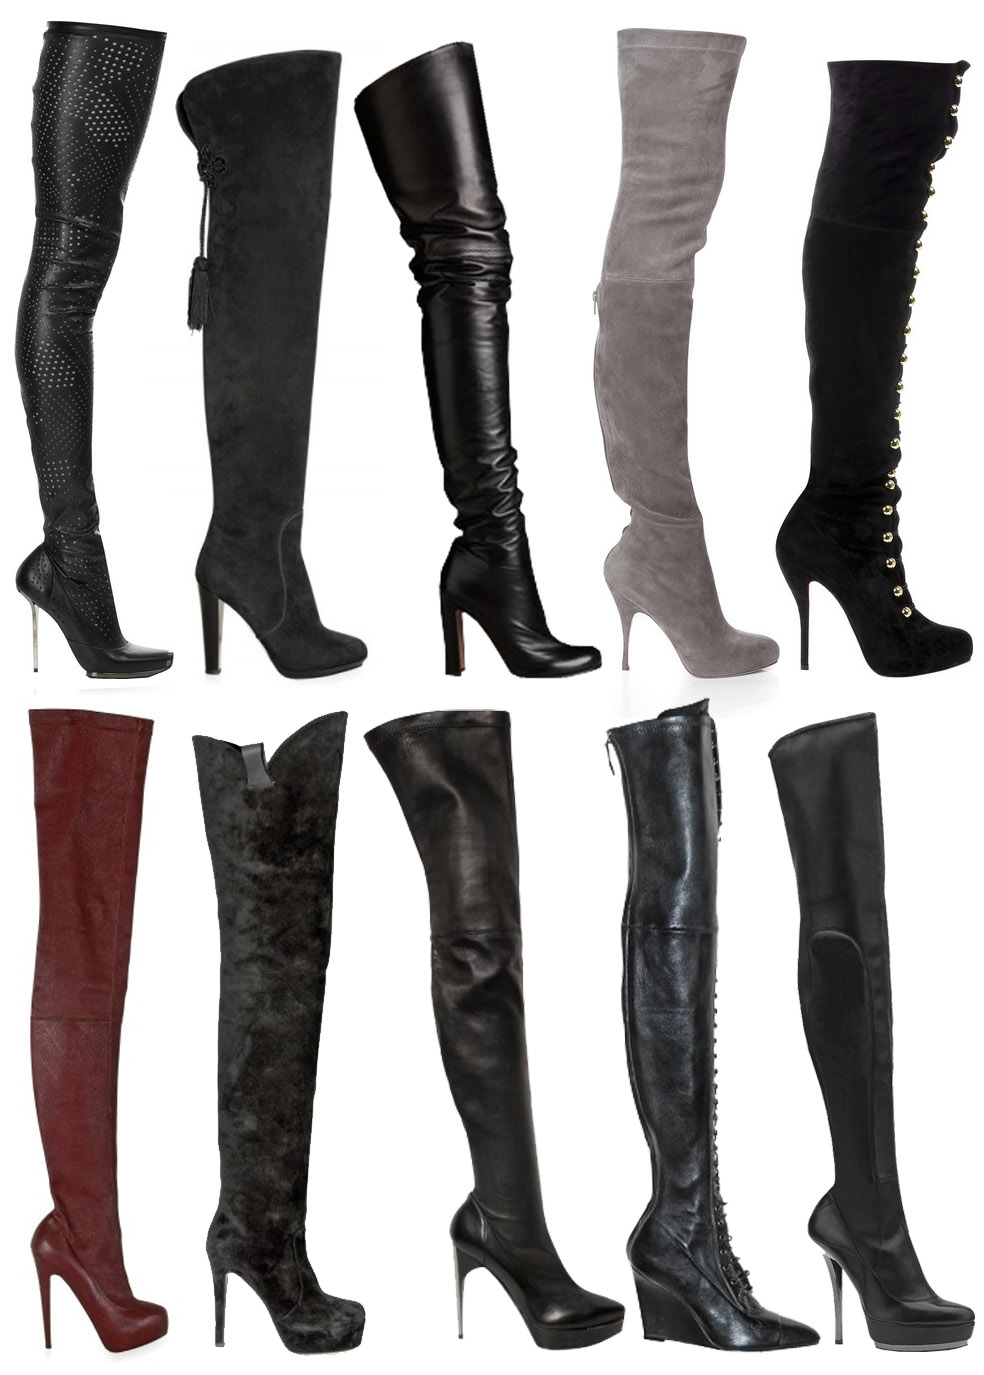 Where Can I Get Thigh High Boots - Yu Boots